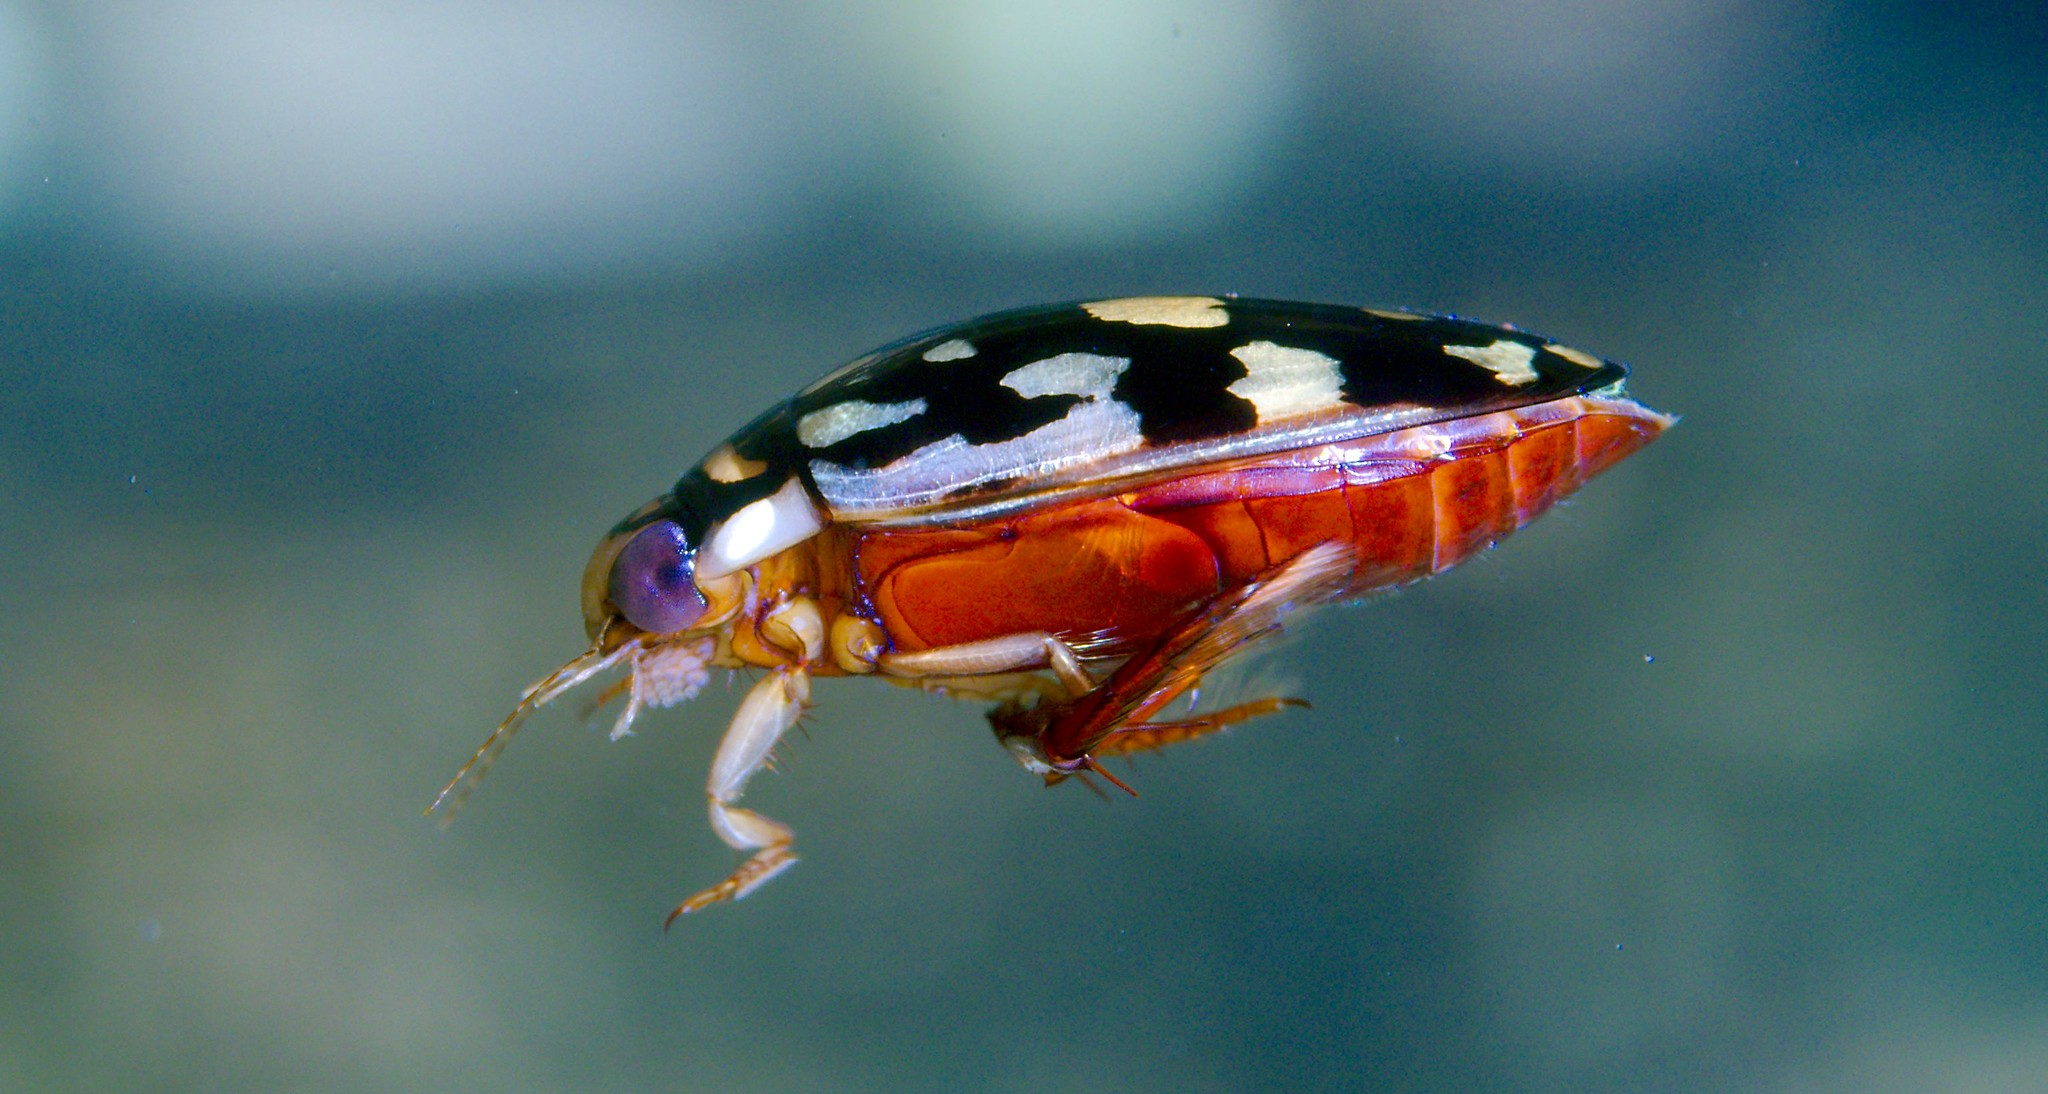 Diving Beetle_2